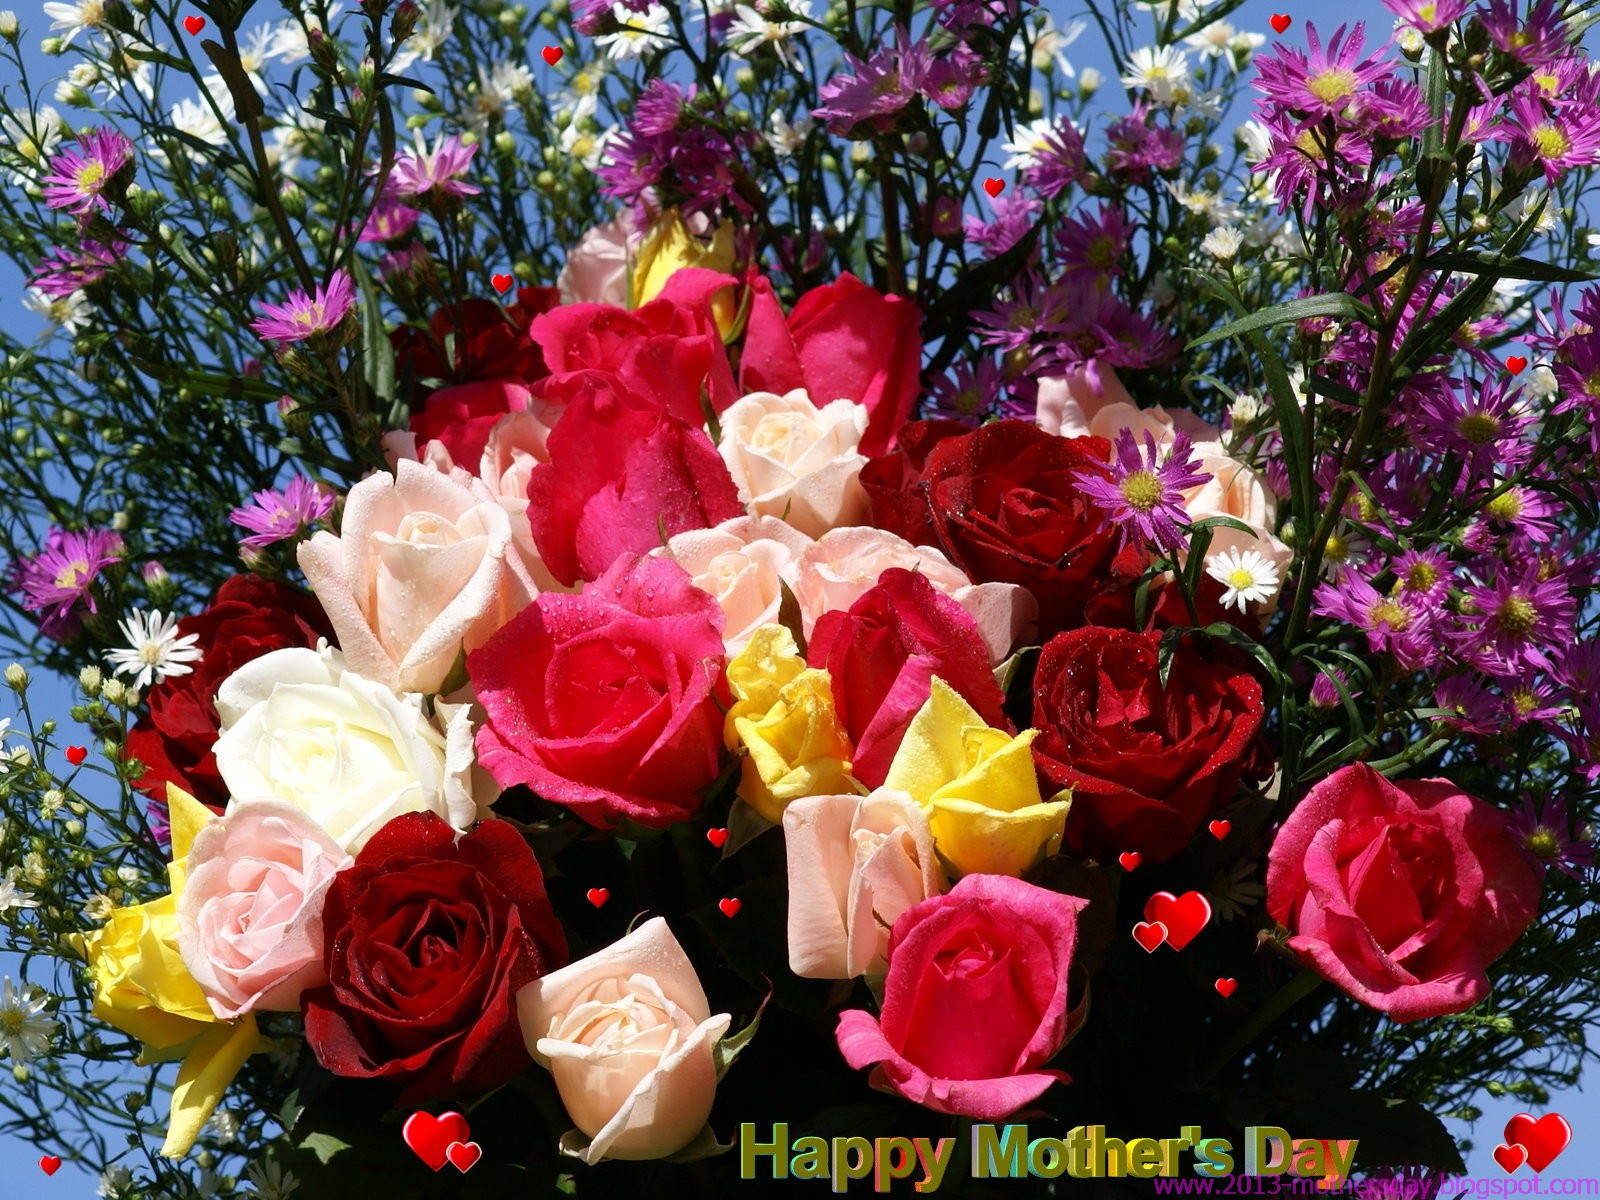 Mothers Day Beautiful flowers desktop HD Wallpaper 1600x1200